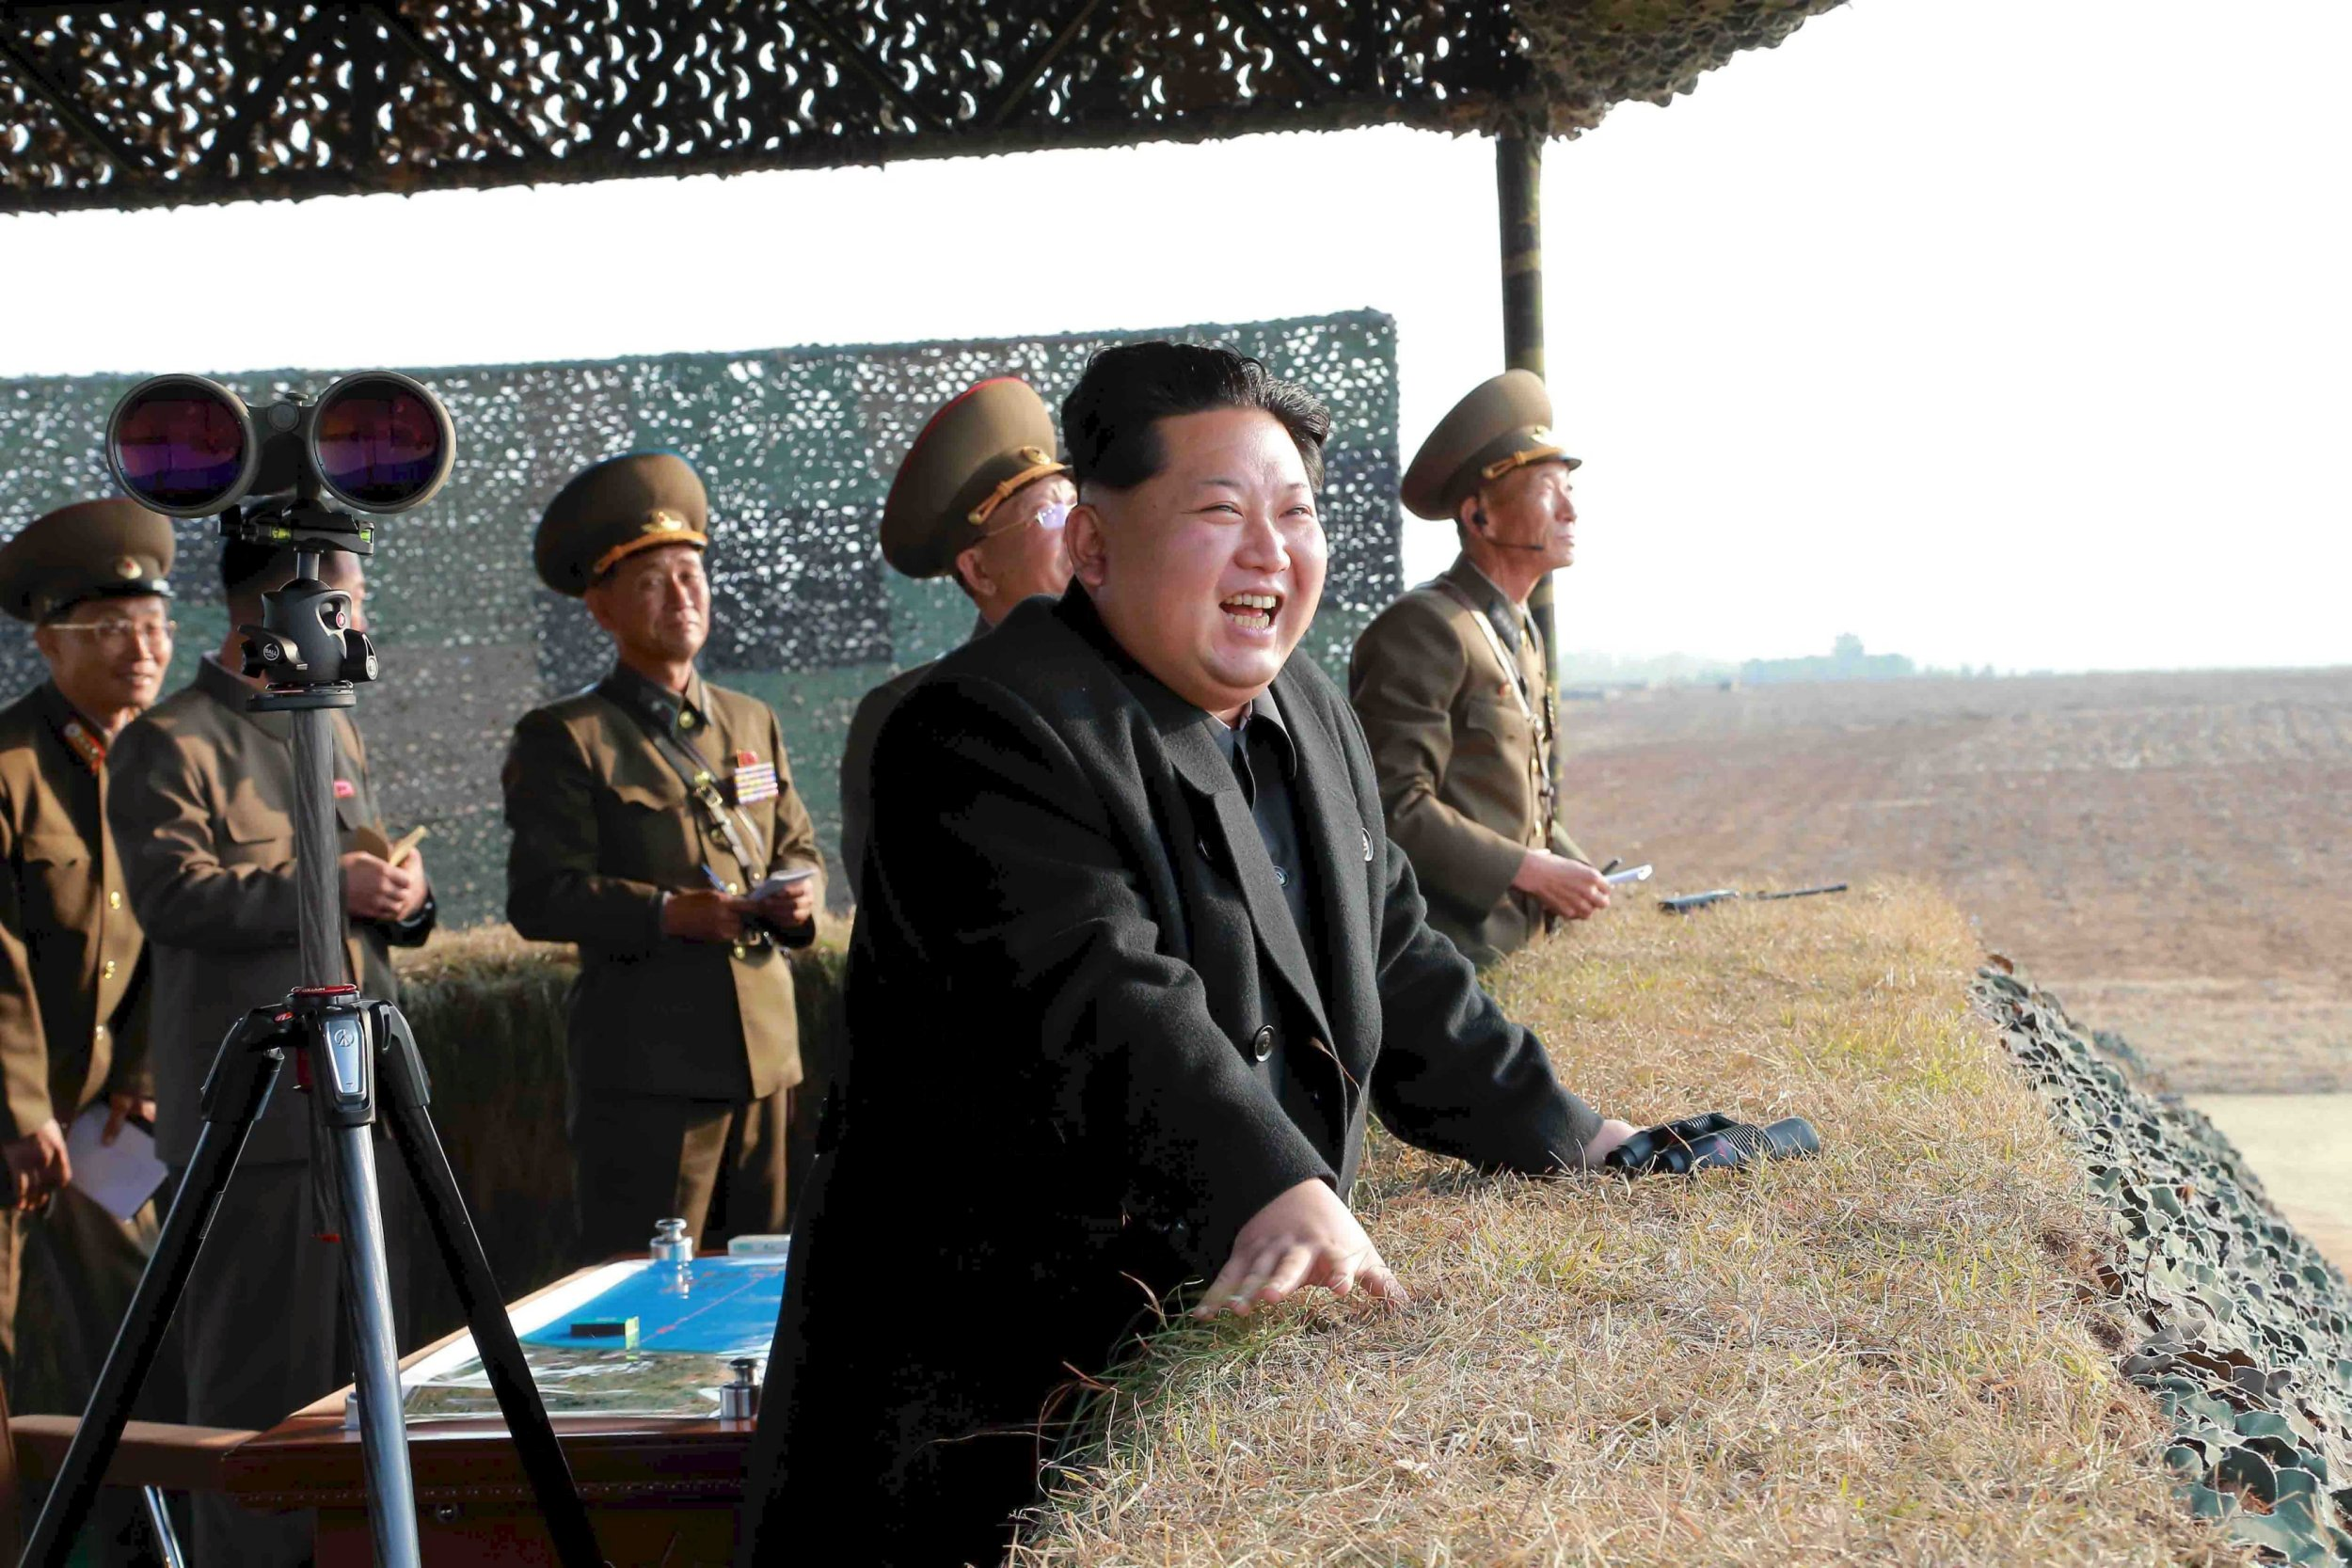 North Korean leader Kim Jong Un watches a rocket firing drill by anti-aircraft units of the Korean People's Army (KPA), in this undated file photo released by North Korea's Korean Central News Agency (KCNA) in Pyongyang November 3, 2015. North Korea has brought forward a time frame for the launch of a rocket that it says will carry an earth observation satellite, to begin on February 7, 2016, the Japanese and South Korean governments said on February 6, 2016. REUTERS/KCNA/Files ATTENTION EDITORS - THIS PICTURE WAS PROVIDED BY A THIRD PARTY. REUTERS IS UNABLE TO INDEPENDENTLY VERIFY THE AUTHENTICITY, CONTENT, LOCATION OR DATE OF THIS IMAGE. FOR EDITORIAL USE ONLY. NOT FOR SALE FOR MARKETING OR ADVERTISING CAMPAIGNS. NO THIRD PARTY SALES. NOT FOR USE BY REUTERS THIRD PARTY DISTRIBUTORS. SOUTH KOREA OUT. NO COMMERCIAL OR EDITORIAL SALES IN SOUTH KOREA. THIS PICTURE IS DISTRIBUTED EXACTLY AS RECEIVED BY REUTERS, AS A SERVICE TO CLIENTS. TPX IMAGES OF THE DAY